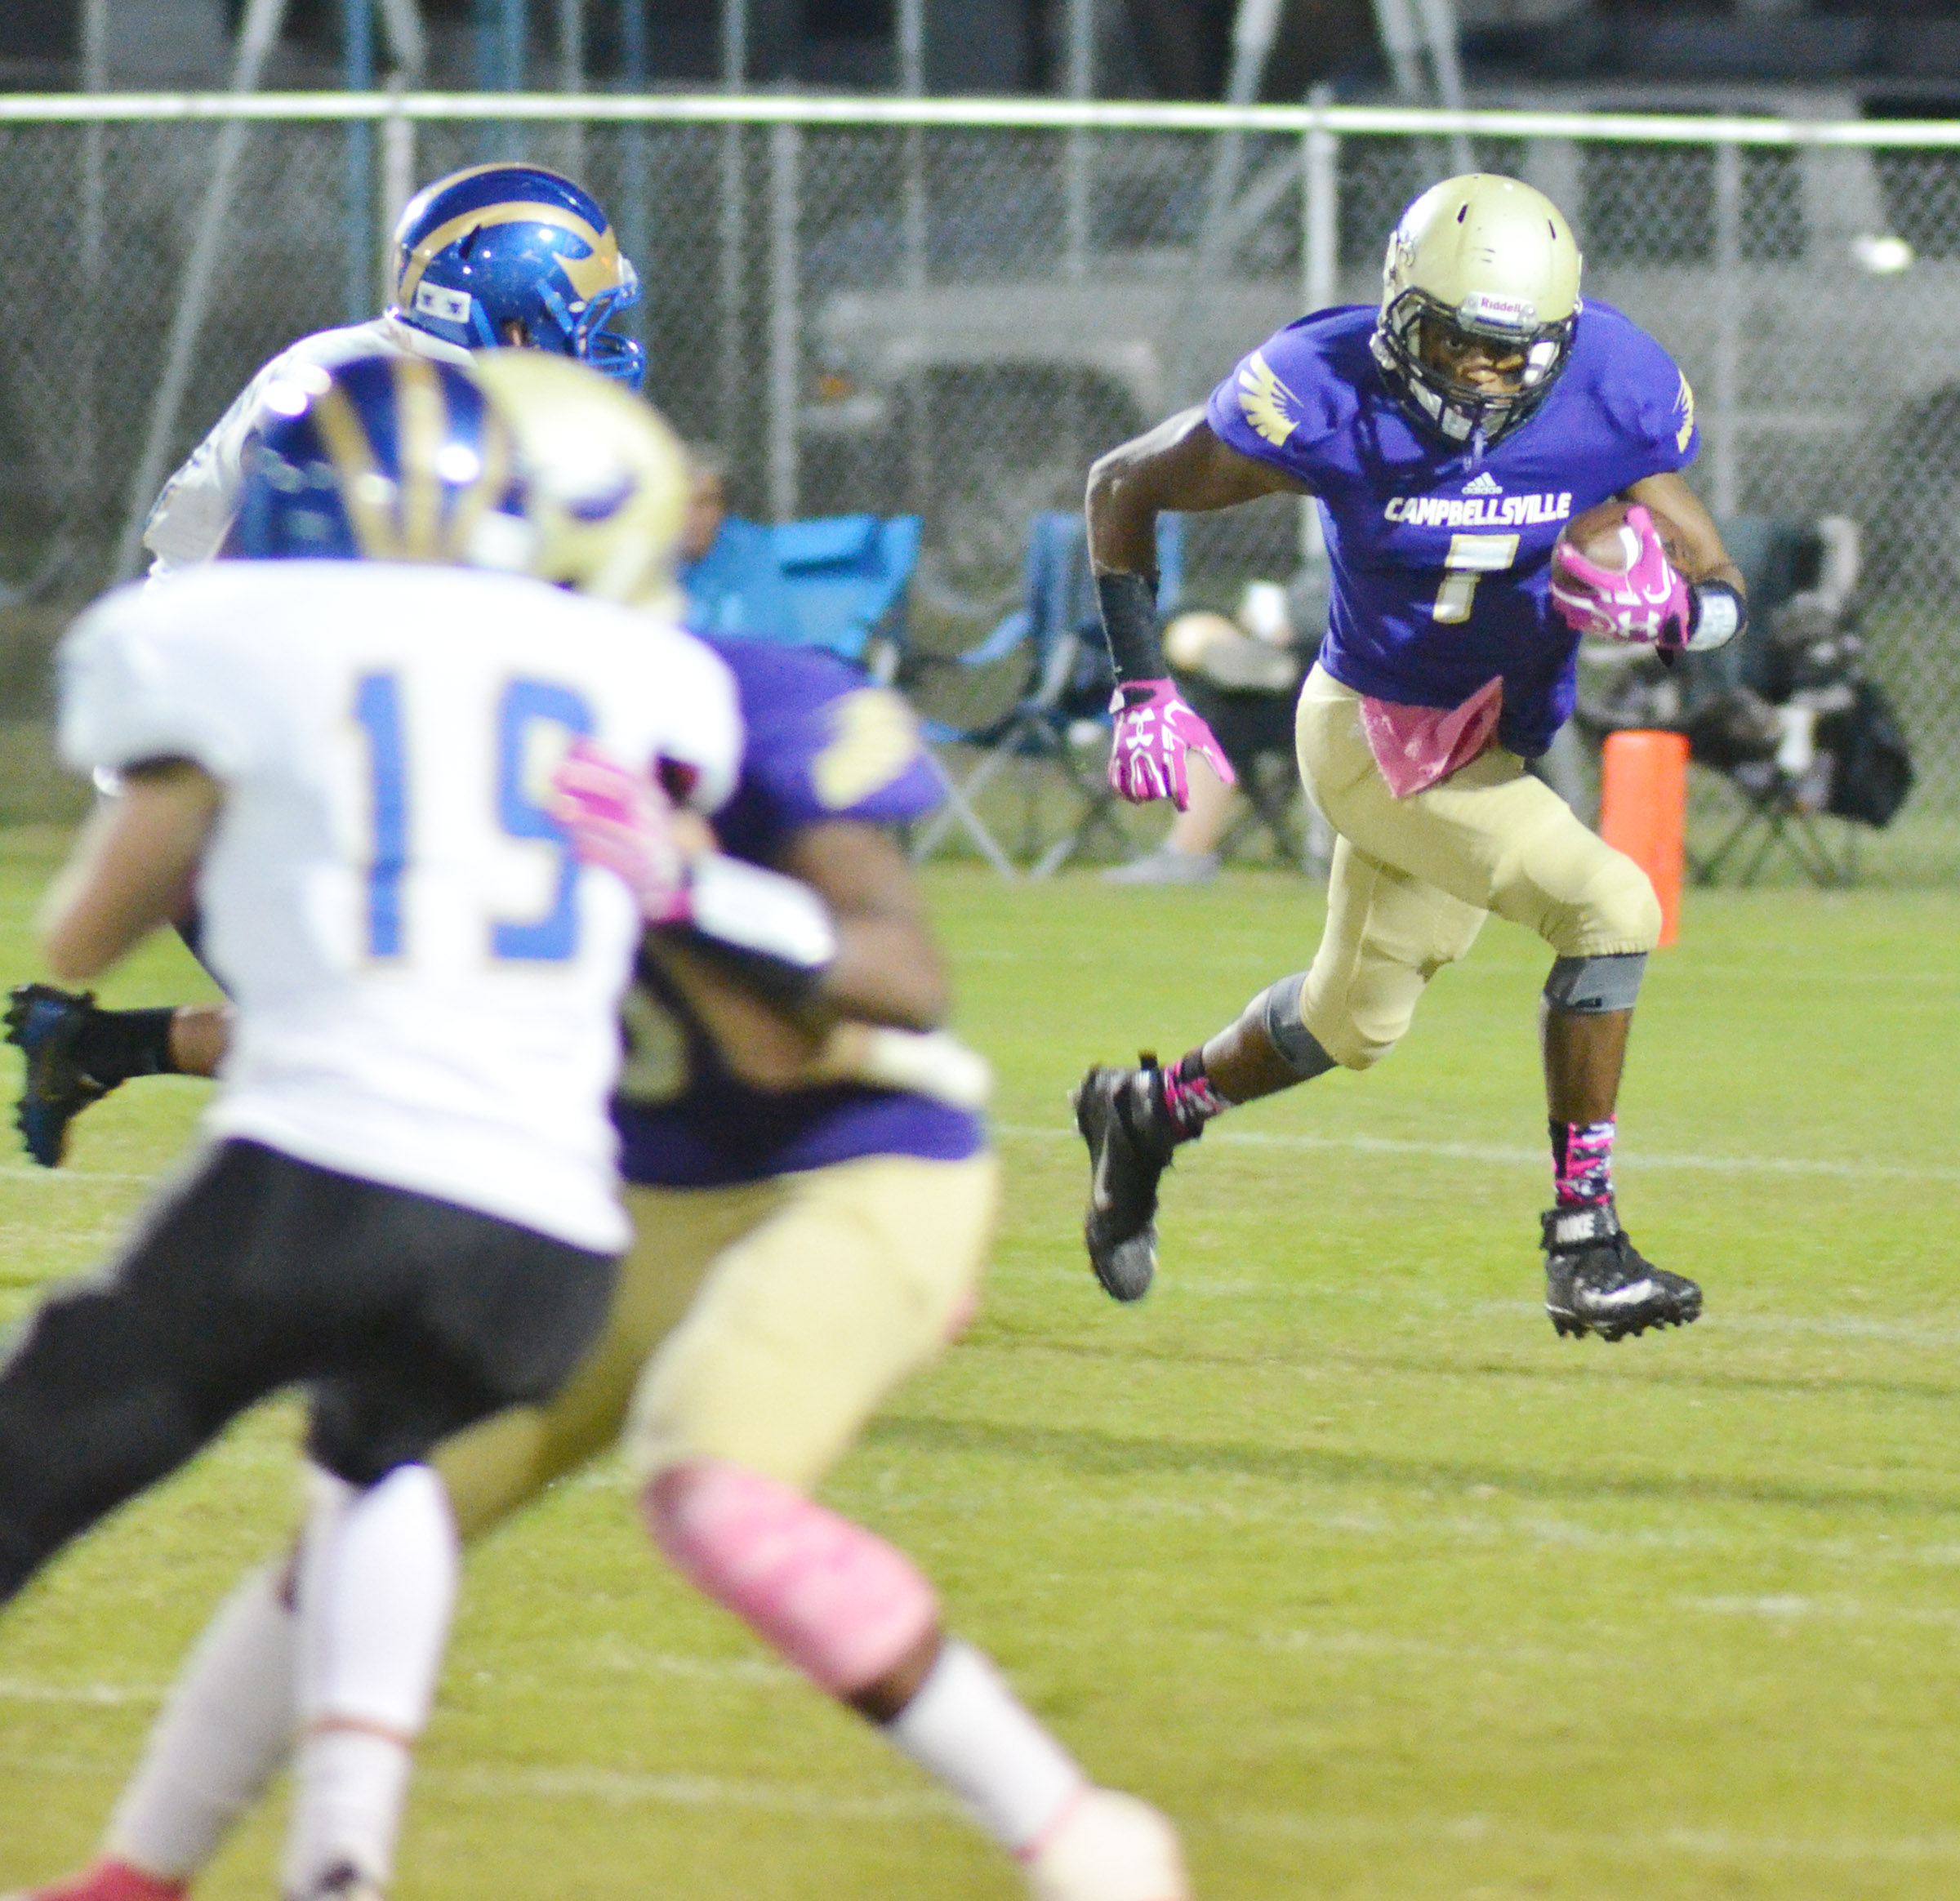 CHS senior Devonte Cubit runs the ball.